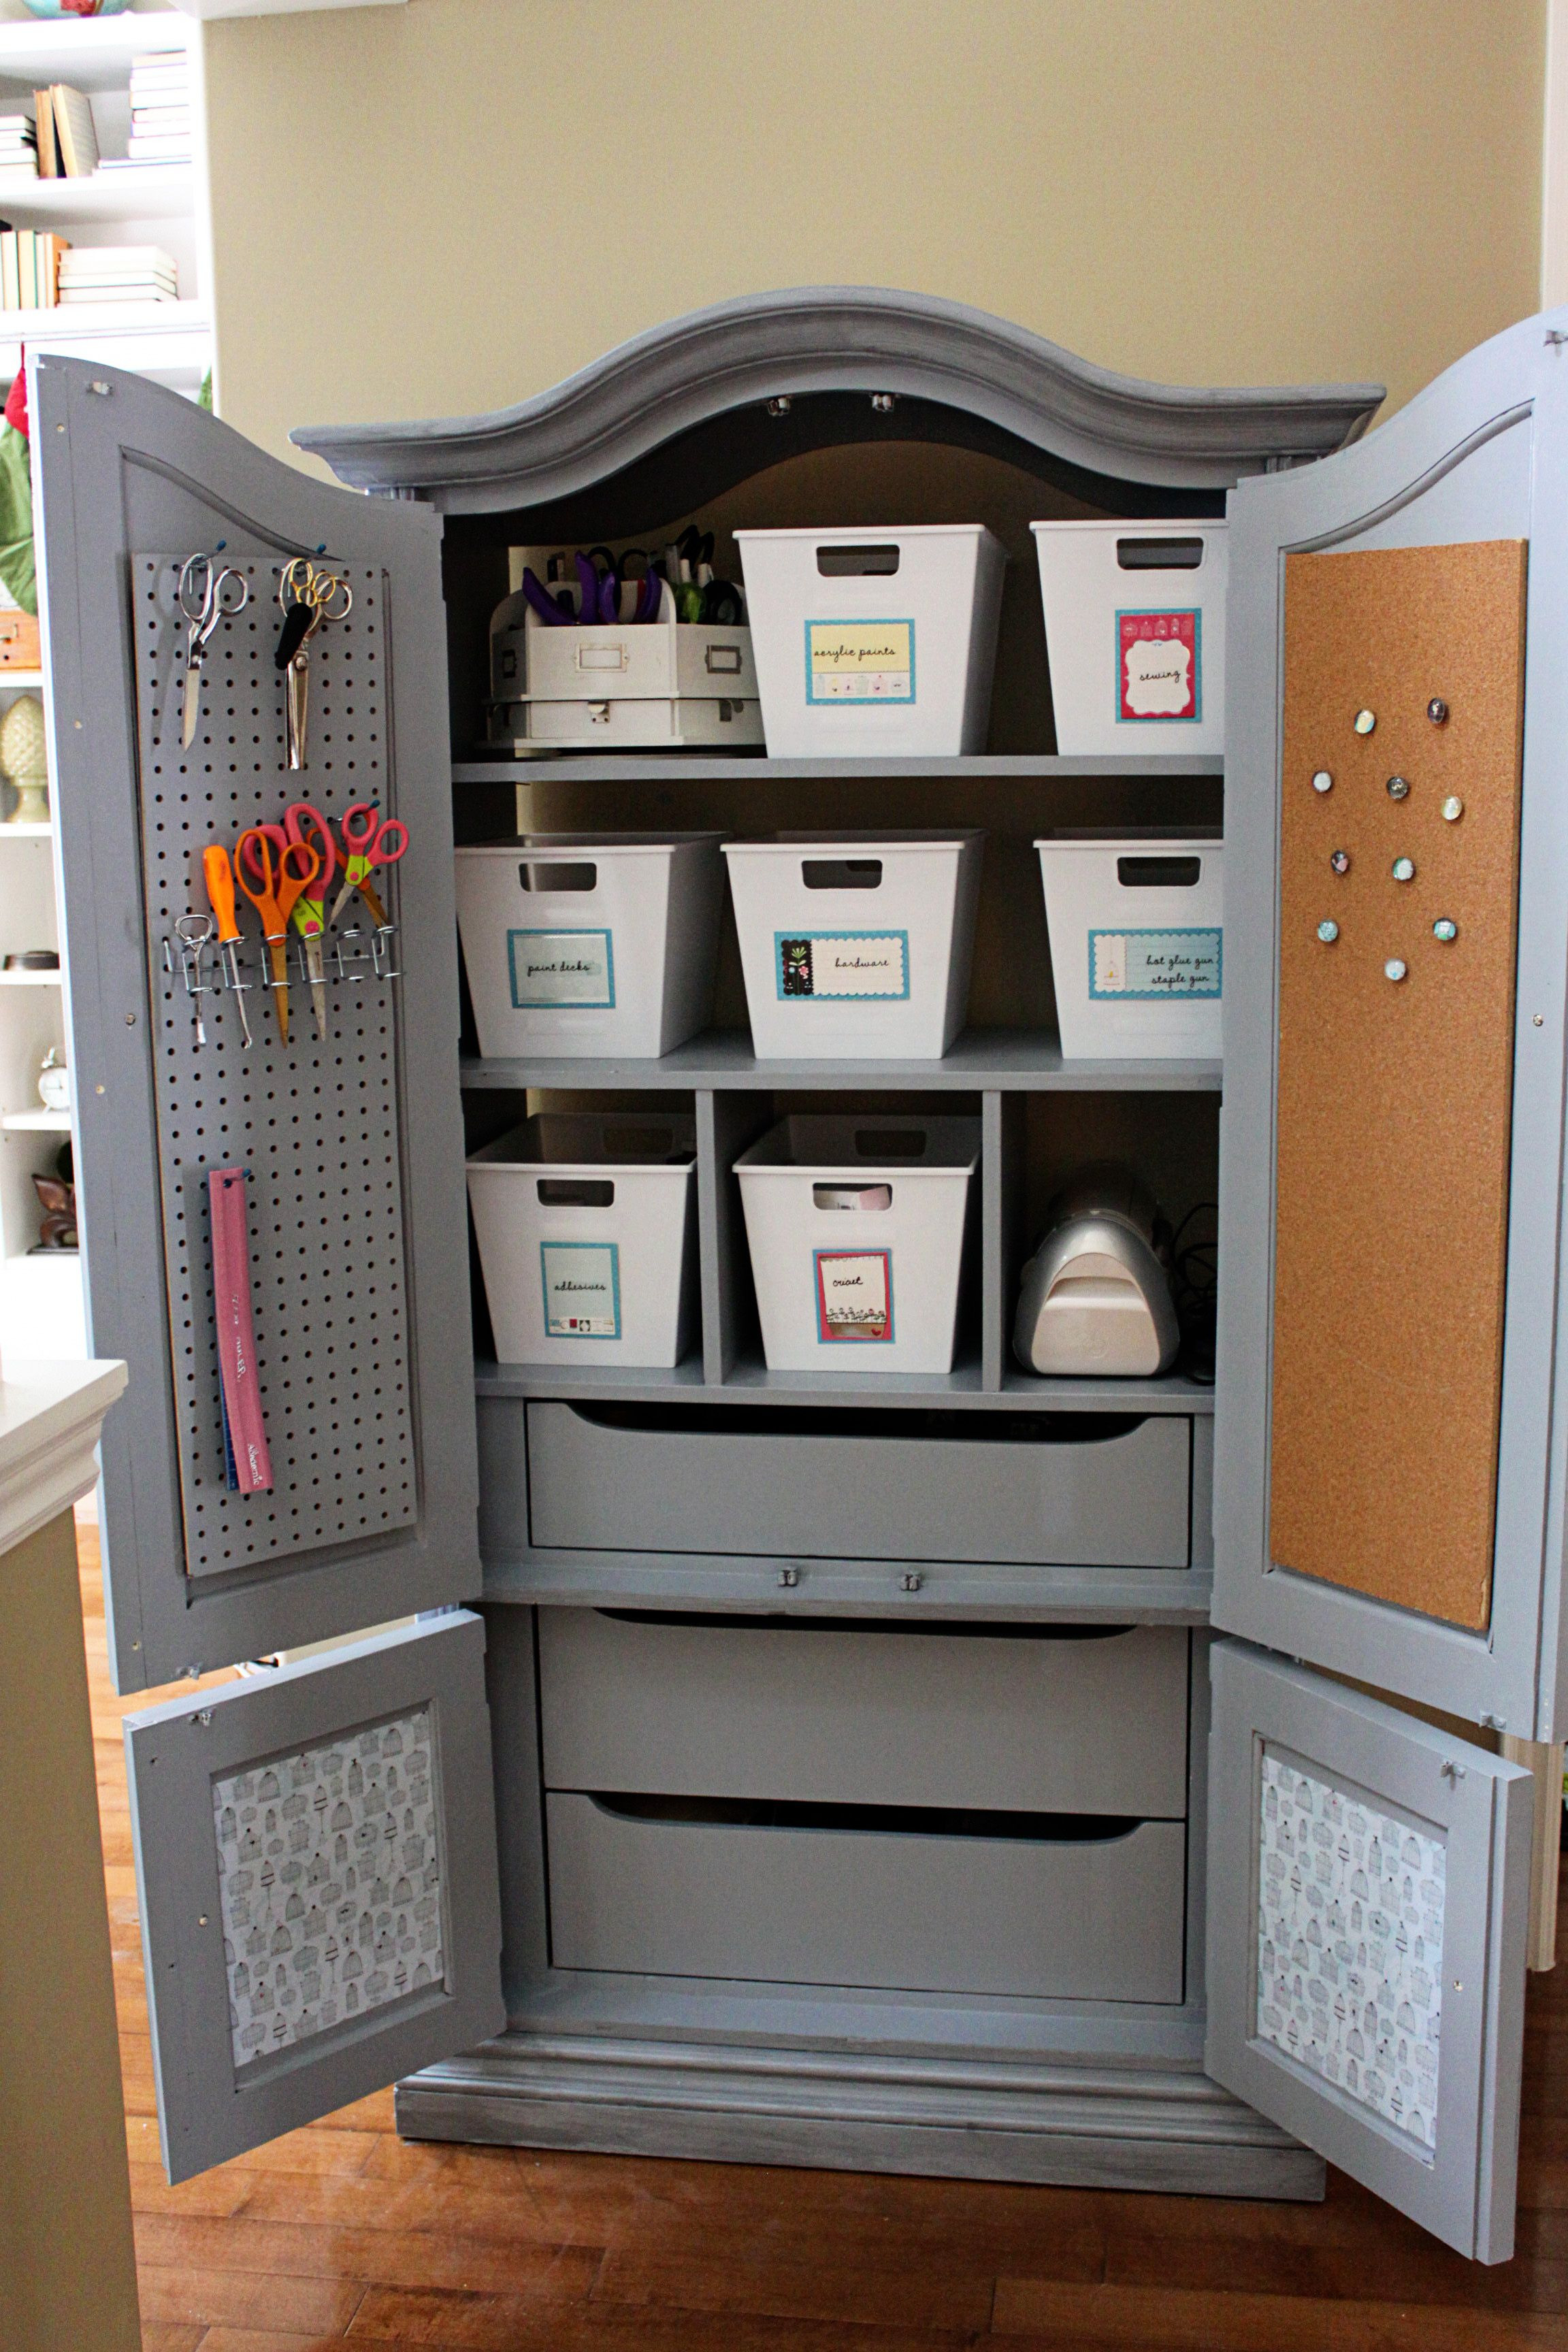 armoires with shelves ideas on foter rh foter com